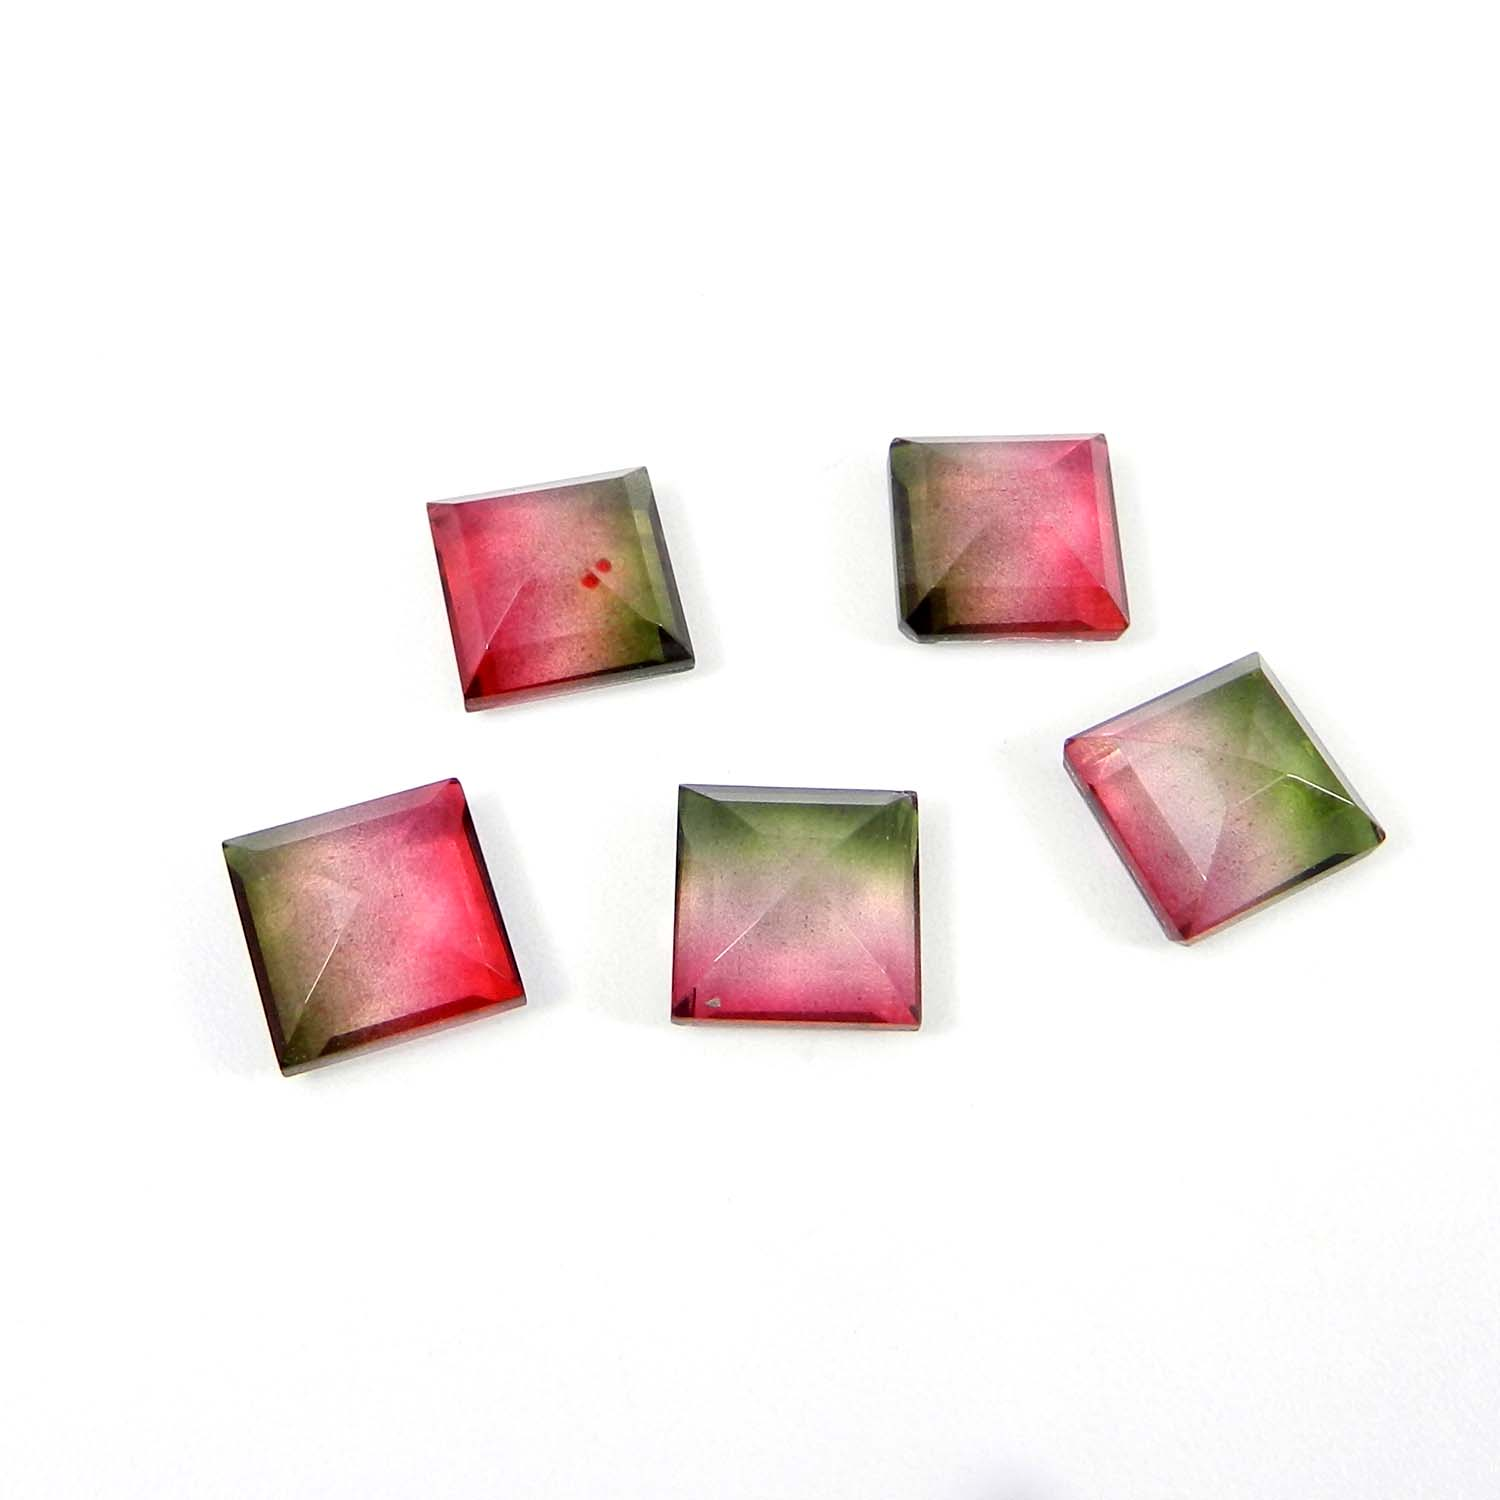 Bio Color & Crystal 10x10mm Square Cut 4.67 Cts